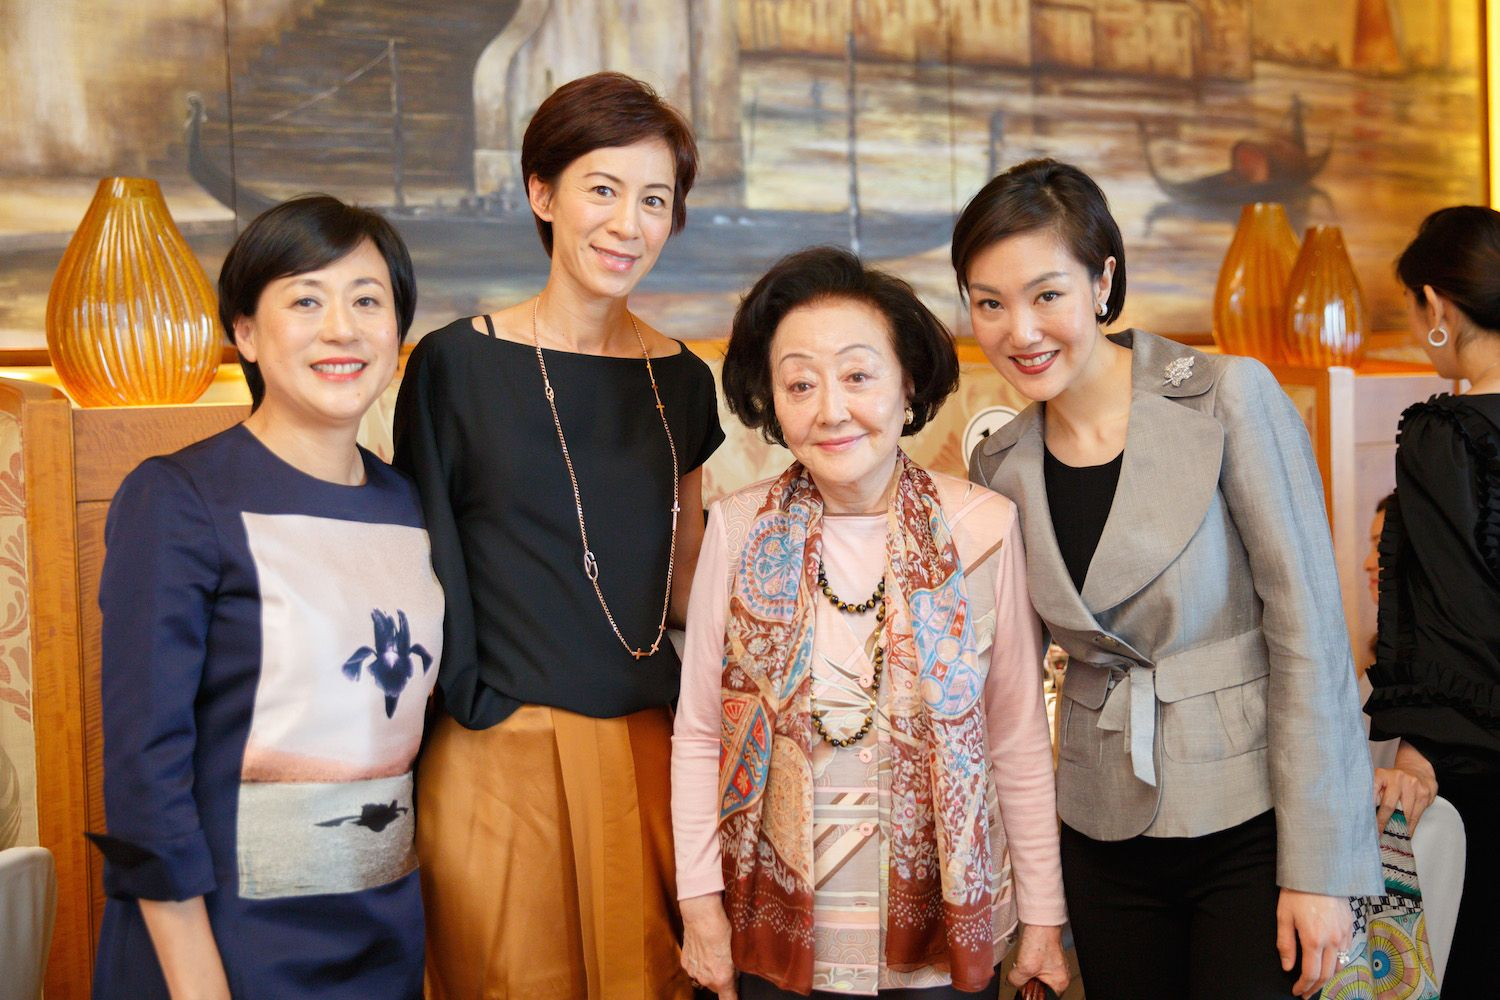 Yvette Ho, Patricia Tung-Gaw, Sally Leung and Jane Chao-Lee